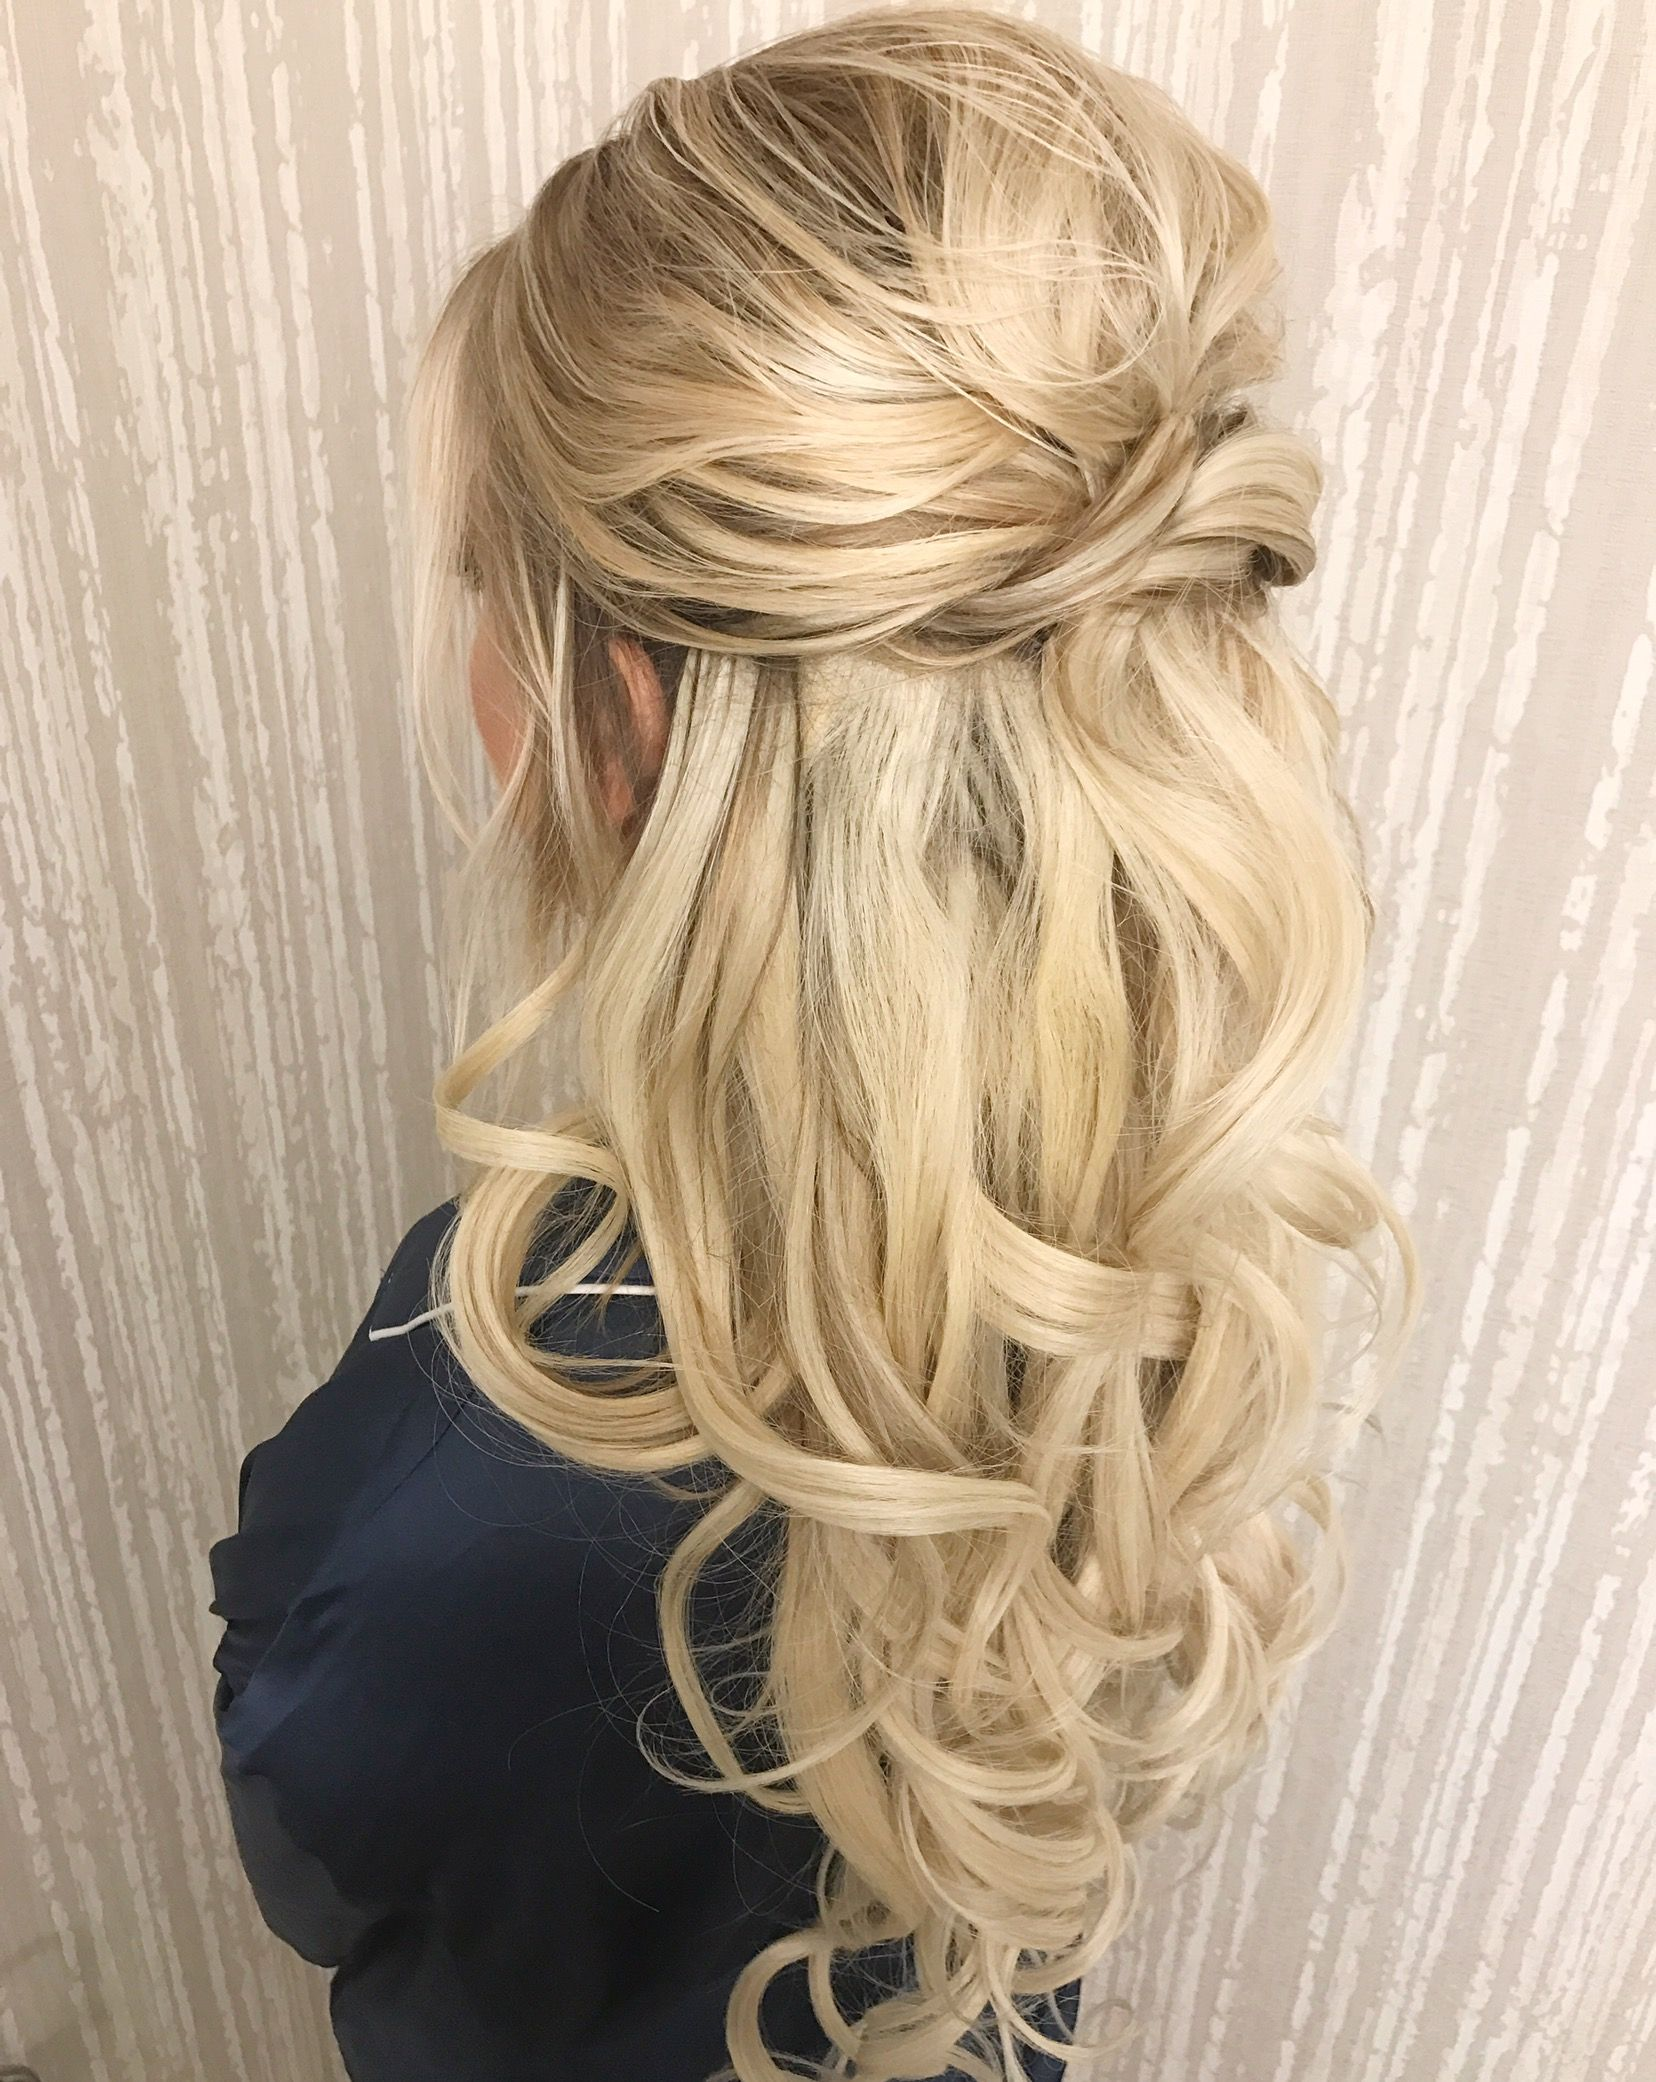 Long Hairstyle: Wedding Hairstyles For Long Hair. Photos Wedding Hairstyles For Long Hair Of Hair With Veil Iphone Hd Half Up Down By Shelbywhitehmu